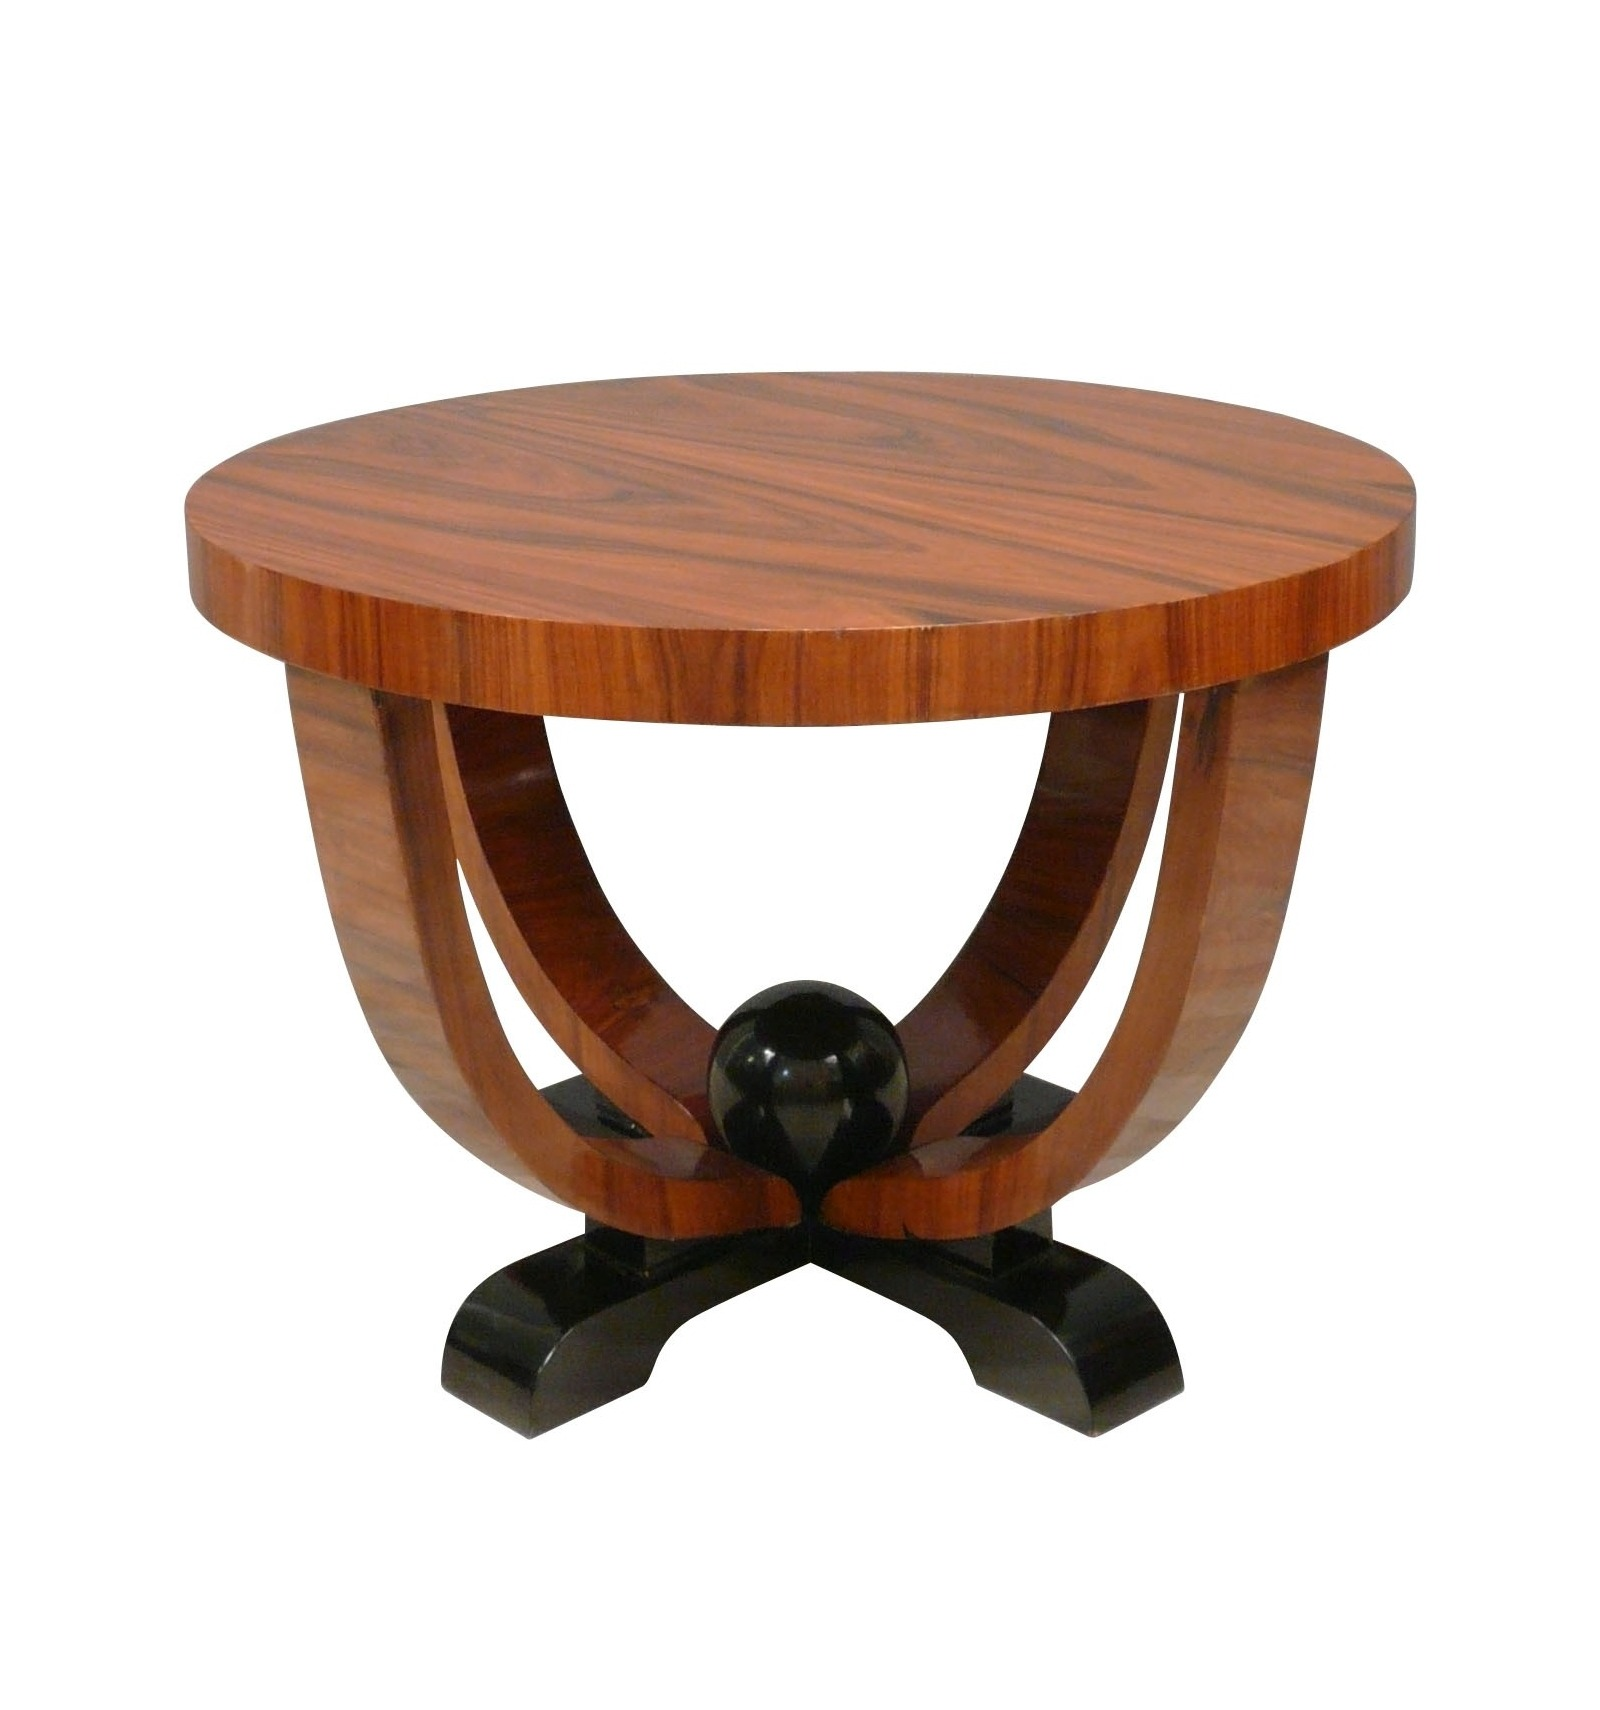 Table basse art d co ronde mobilier de style for Deco table basse salon